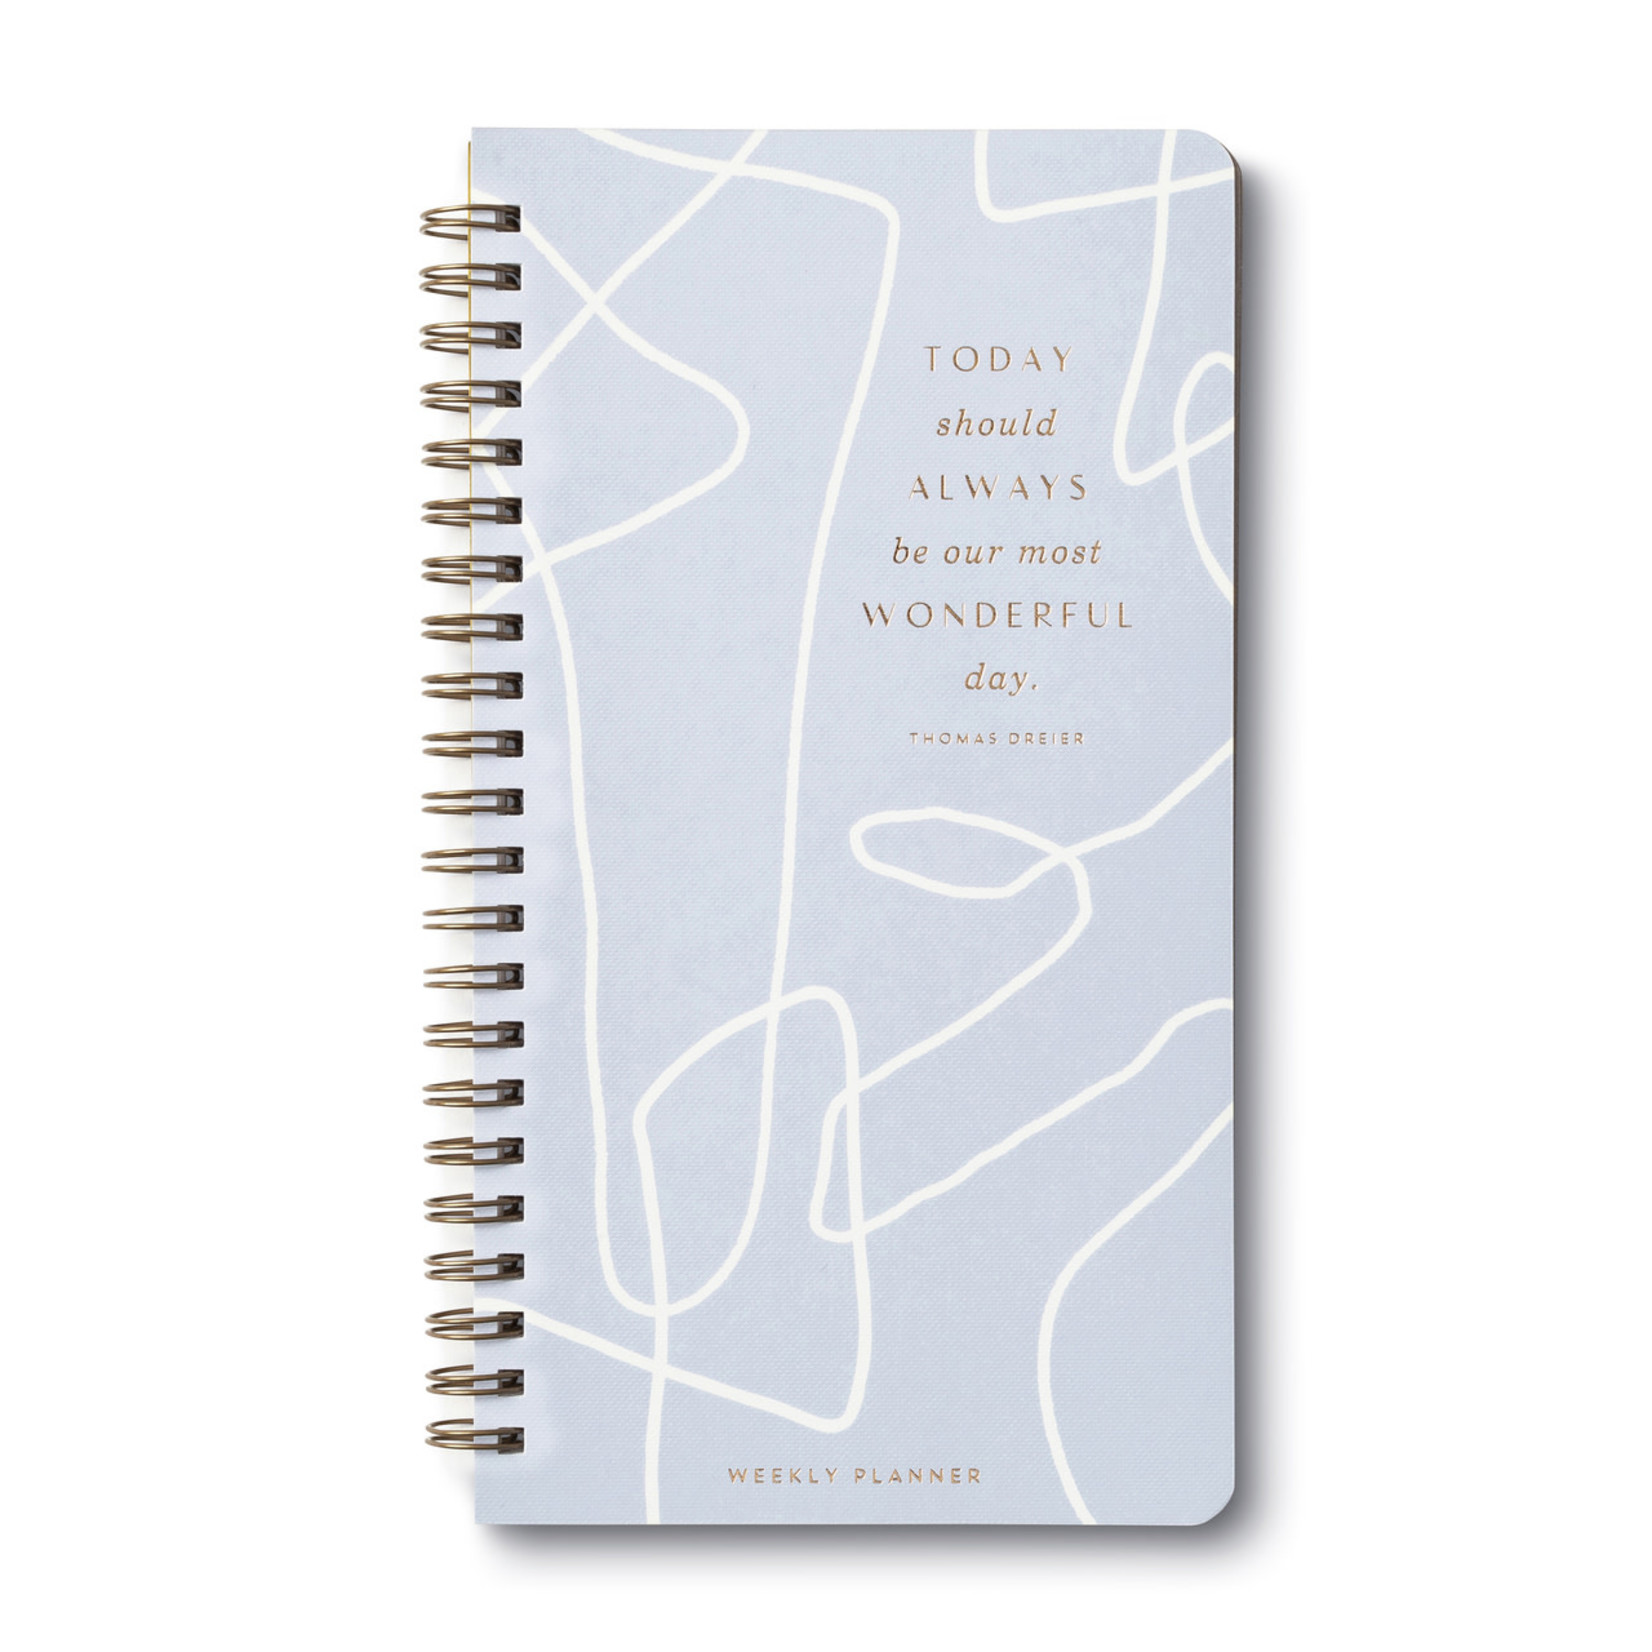 WEEKLY PLANNER - TODAY SHOULD ALWAYS BE OUR MOST WONDERFUL DAY